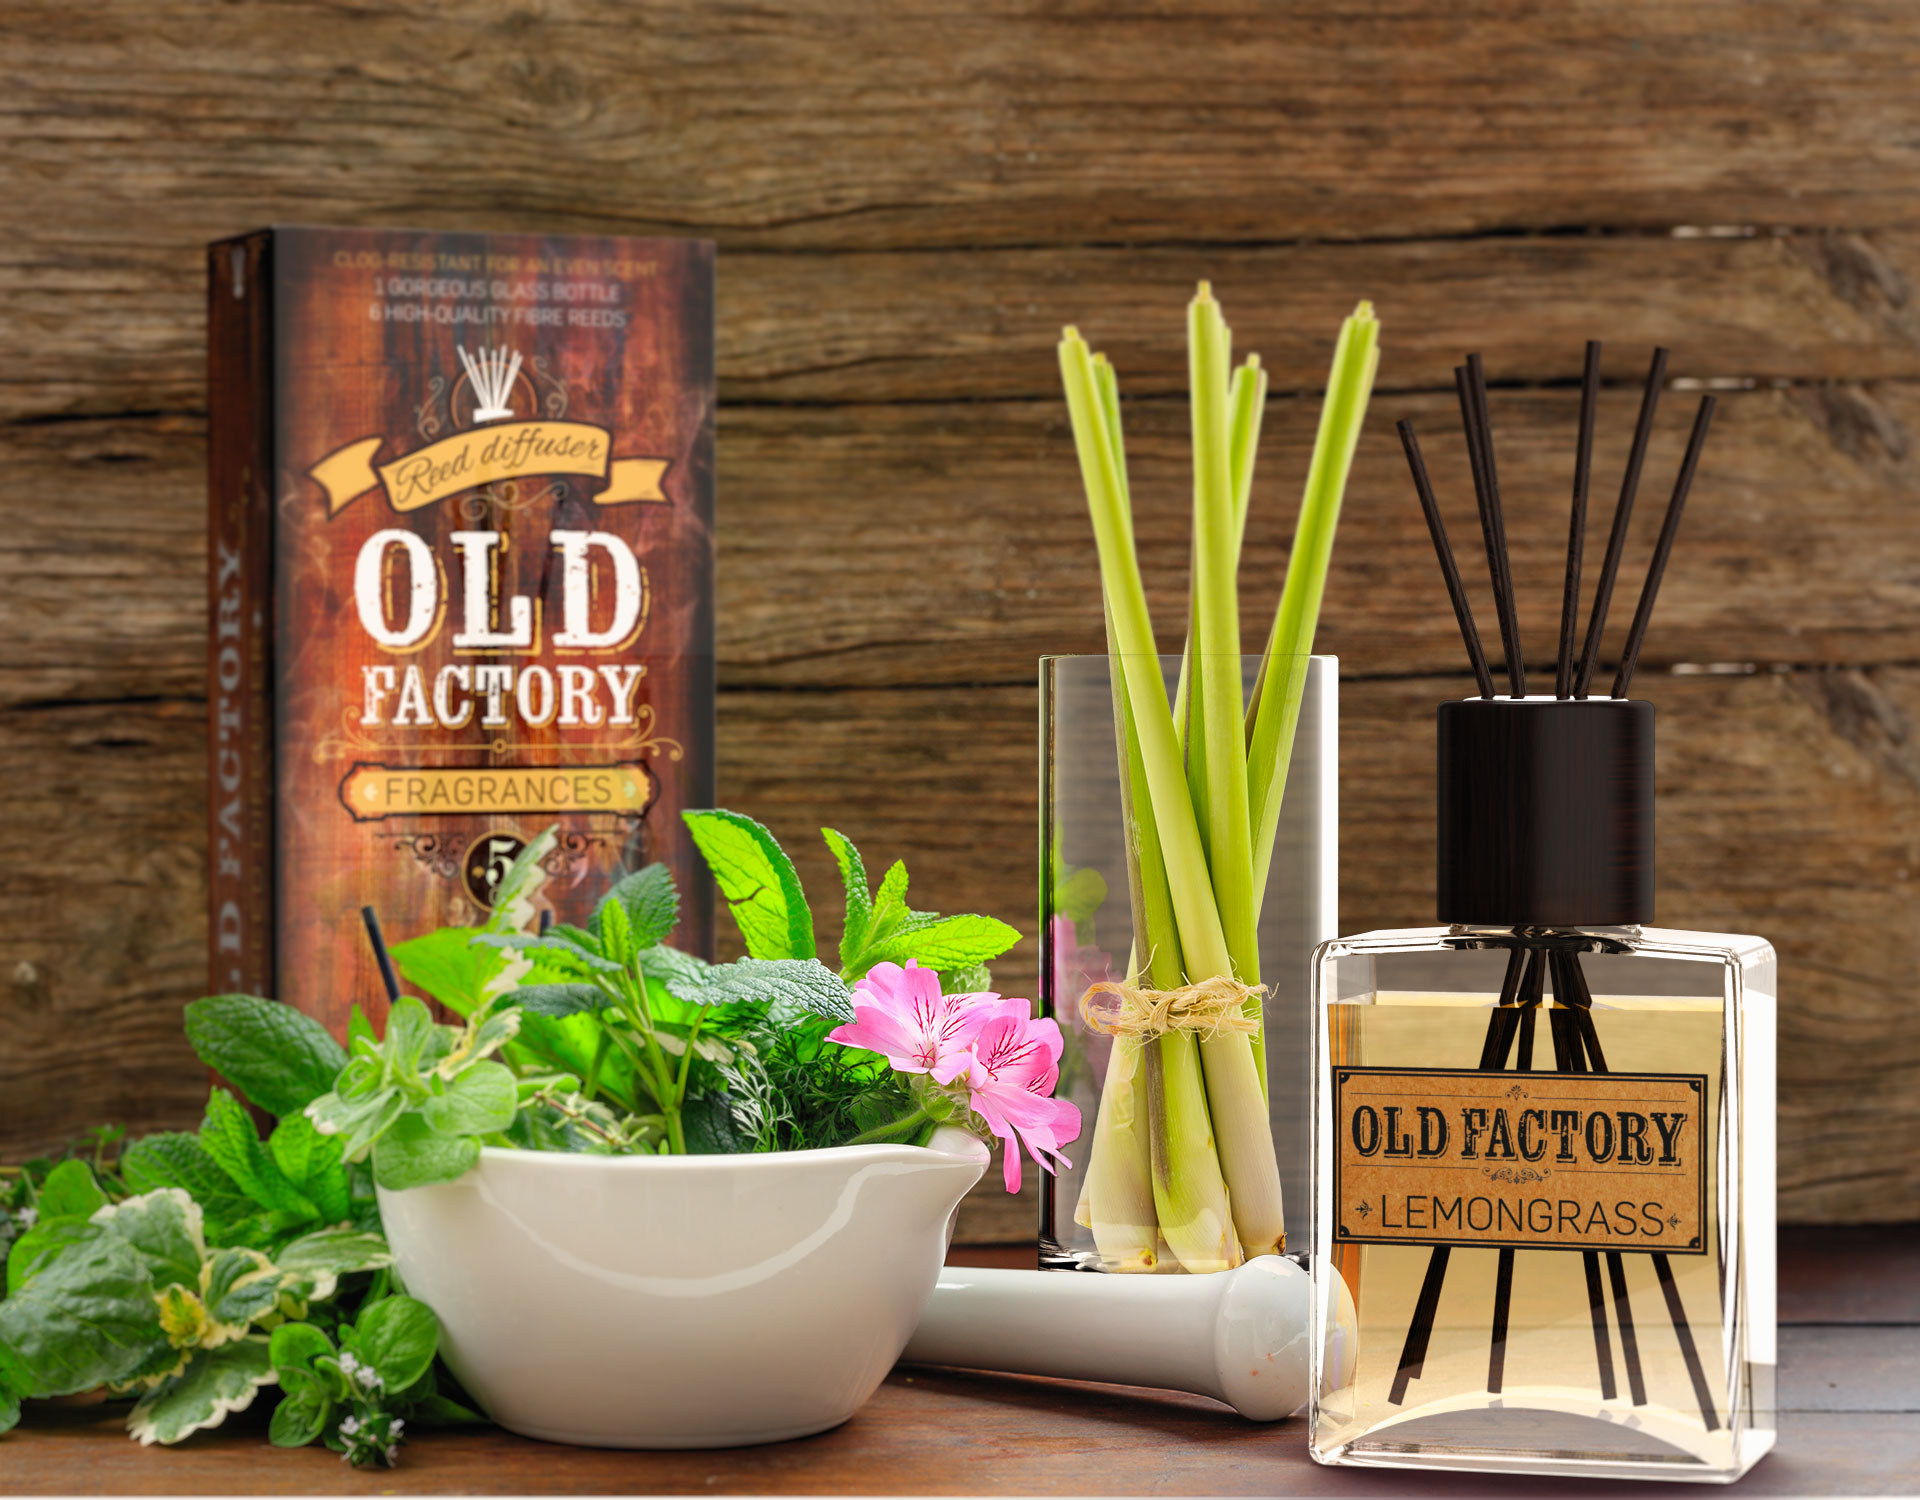 Clear The Air With Old Factory's Lemongrass Reed Diffusers